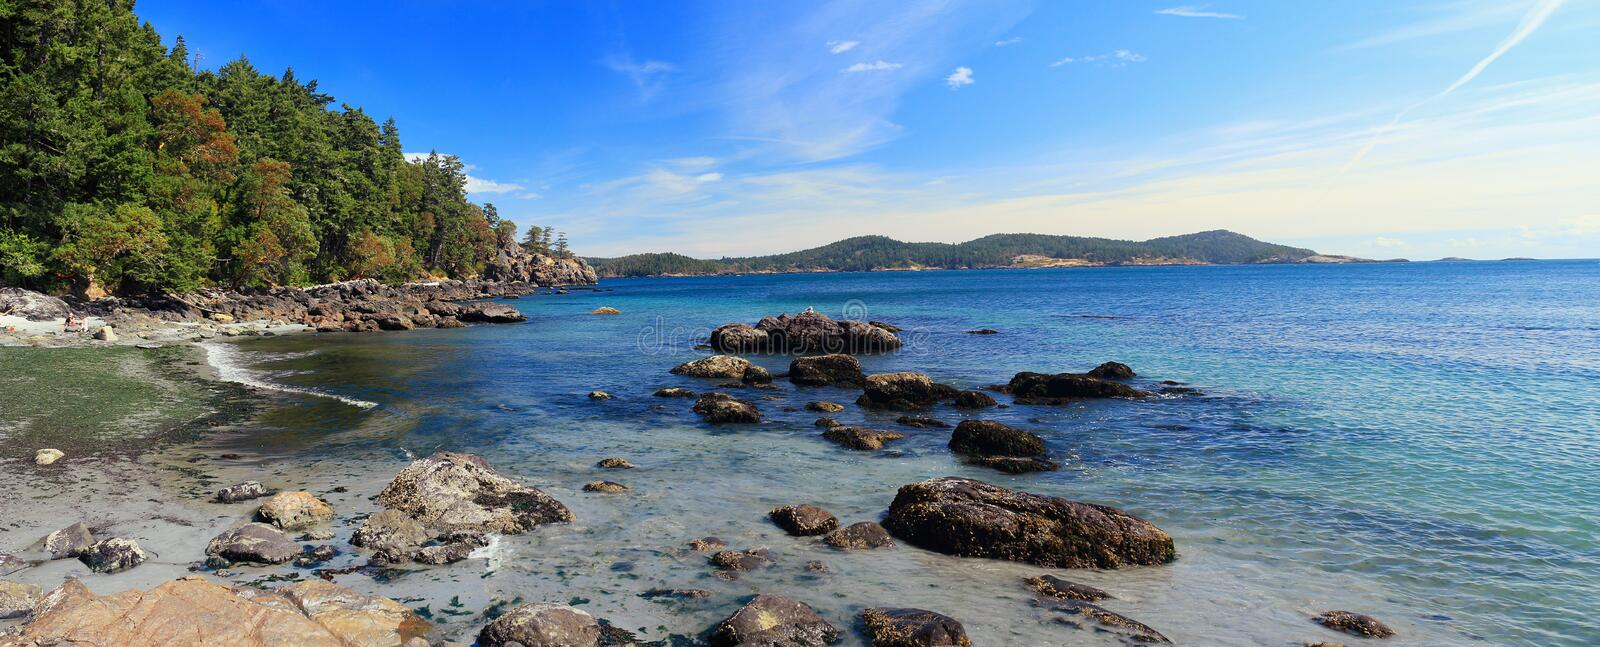 East Sooke Park, Vancouver Island, British Columbia, Canada - Landscape Panorama of Becher Bay. East Sooke Park, Vancouver Island, British Columbia, Canada stock photos